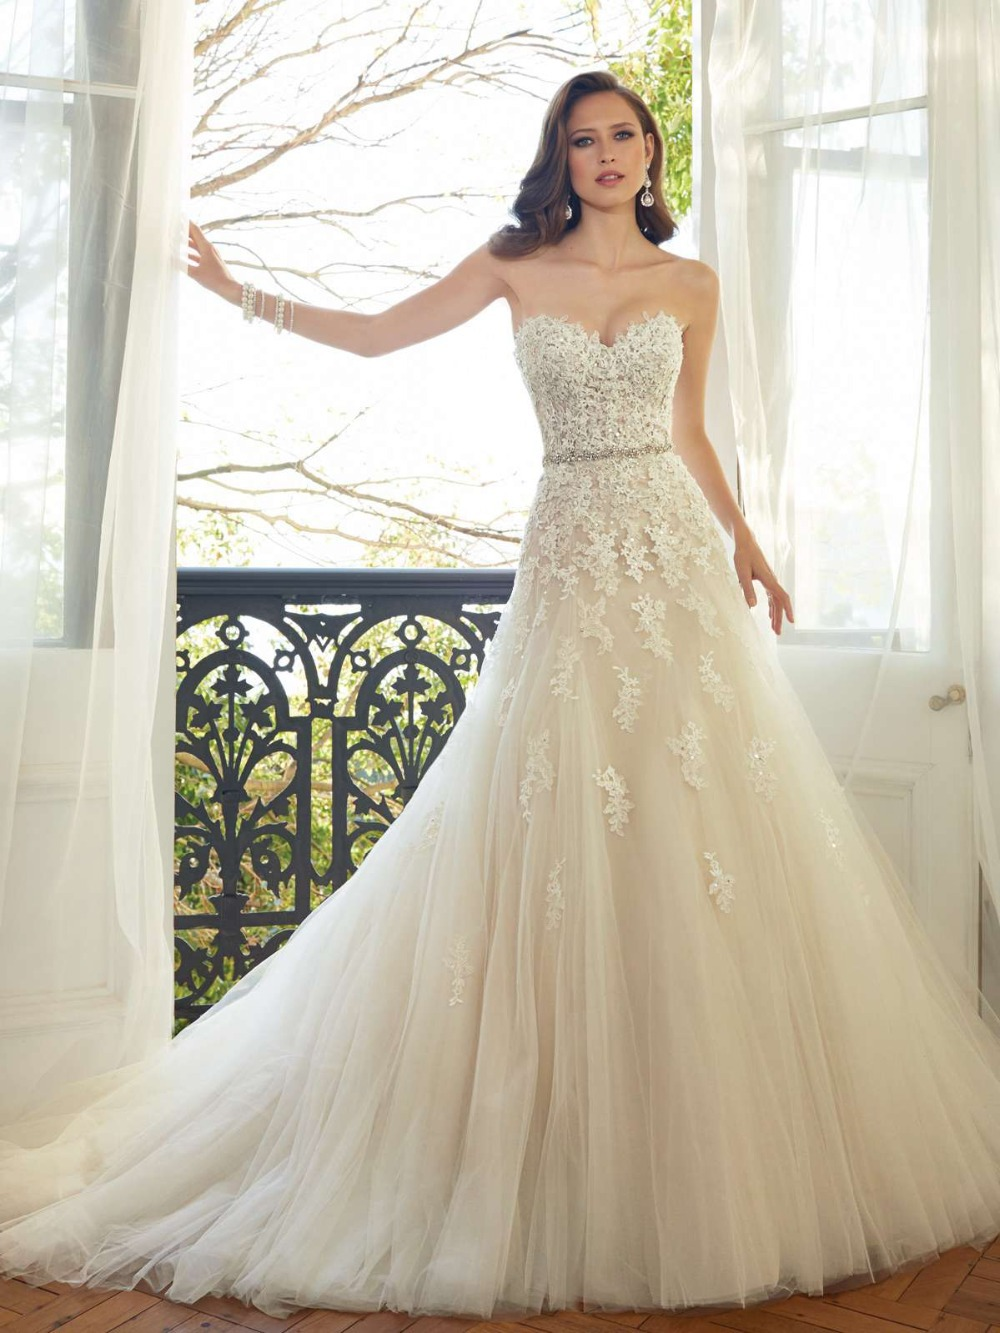 floor length strapless sweetheart tulle lace mermaid wedding dress white mermaid wedding dresses strapless sweetheart mermaid wedding dress lace mermaid wedding dress